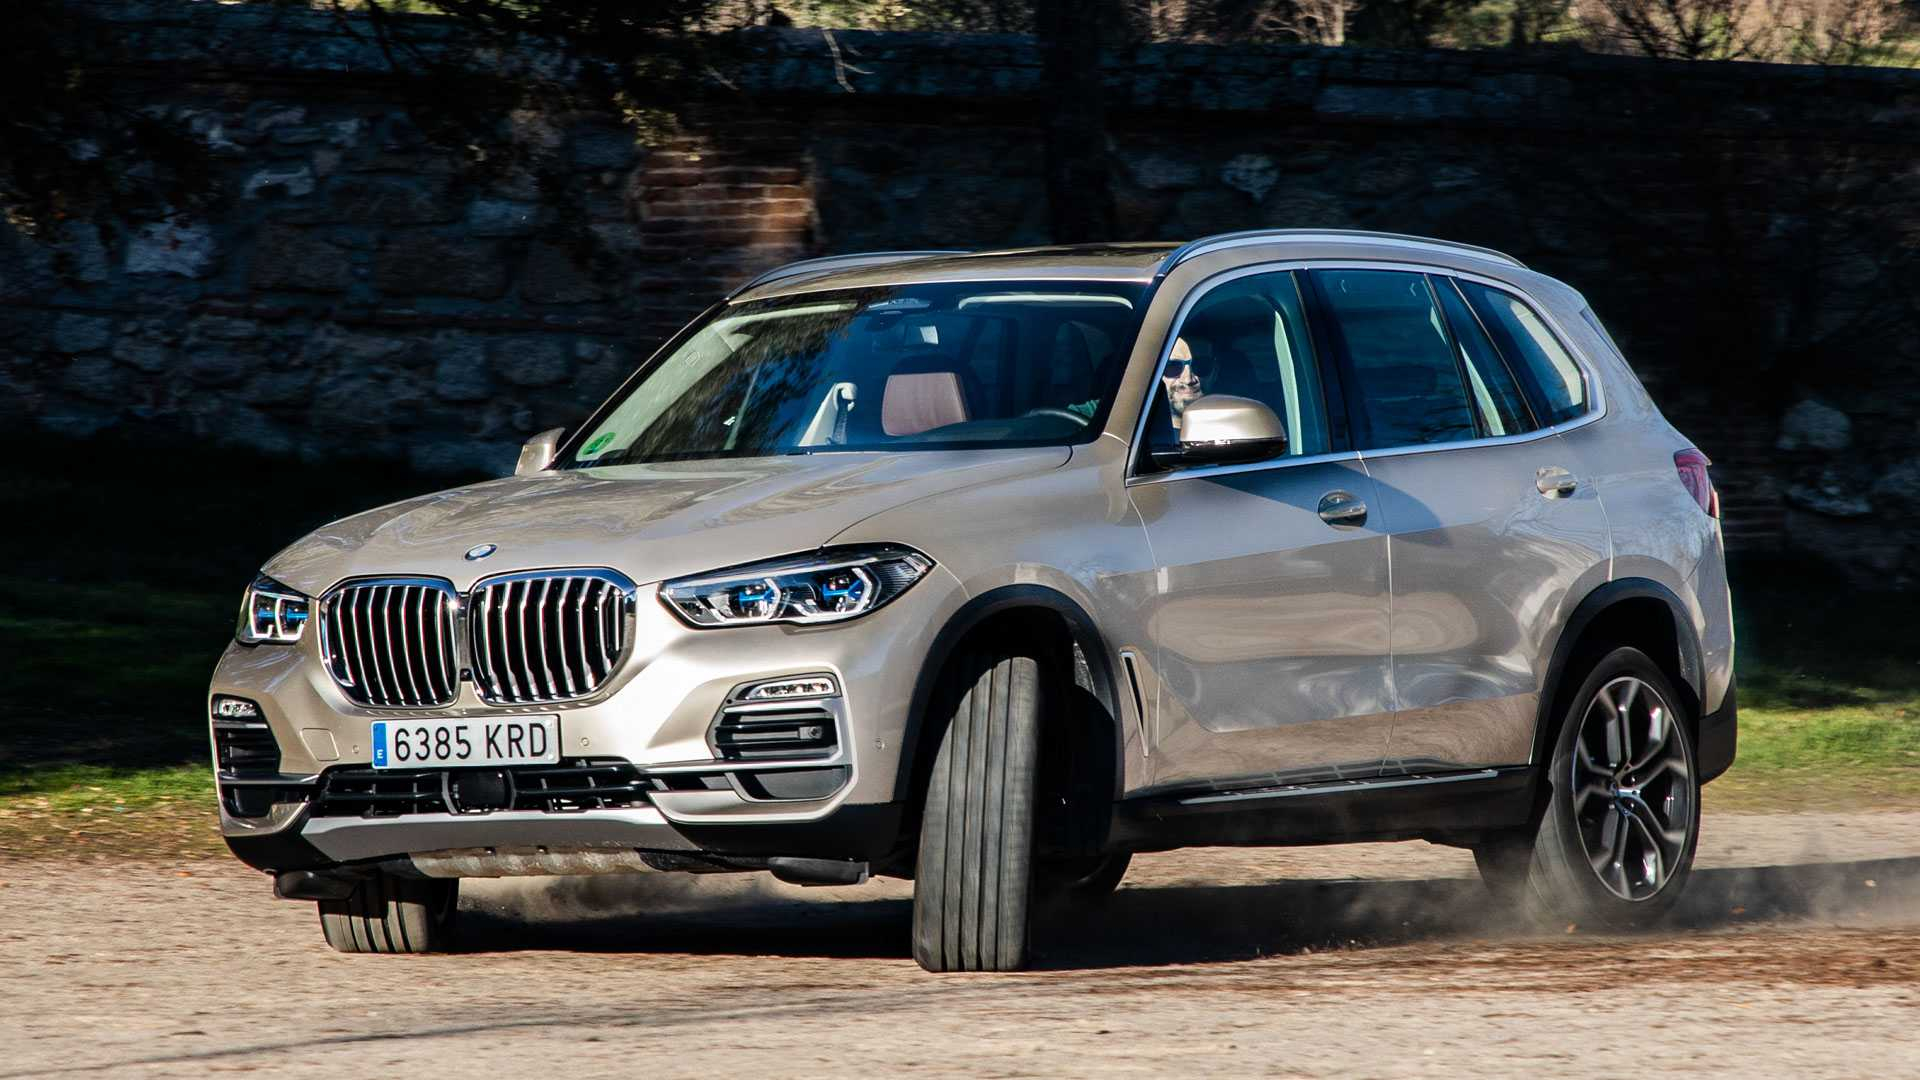 BMW X5 News and Reviews | Motor1.com UK